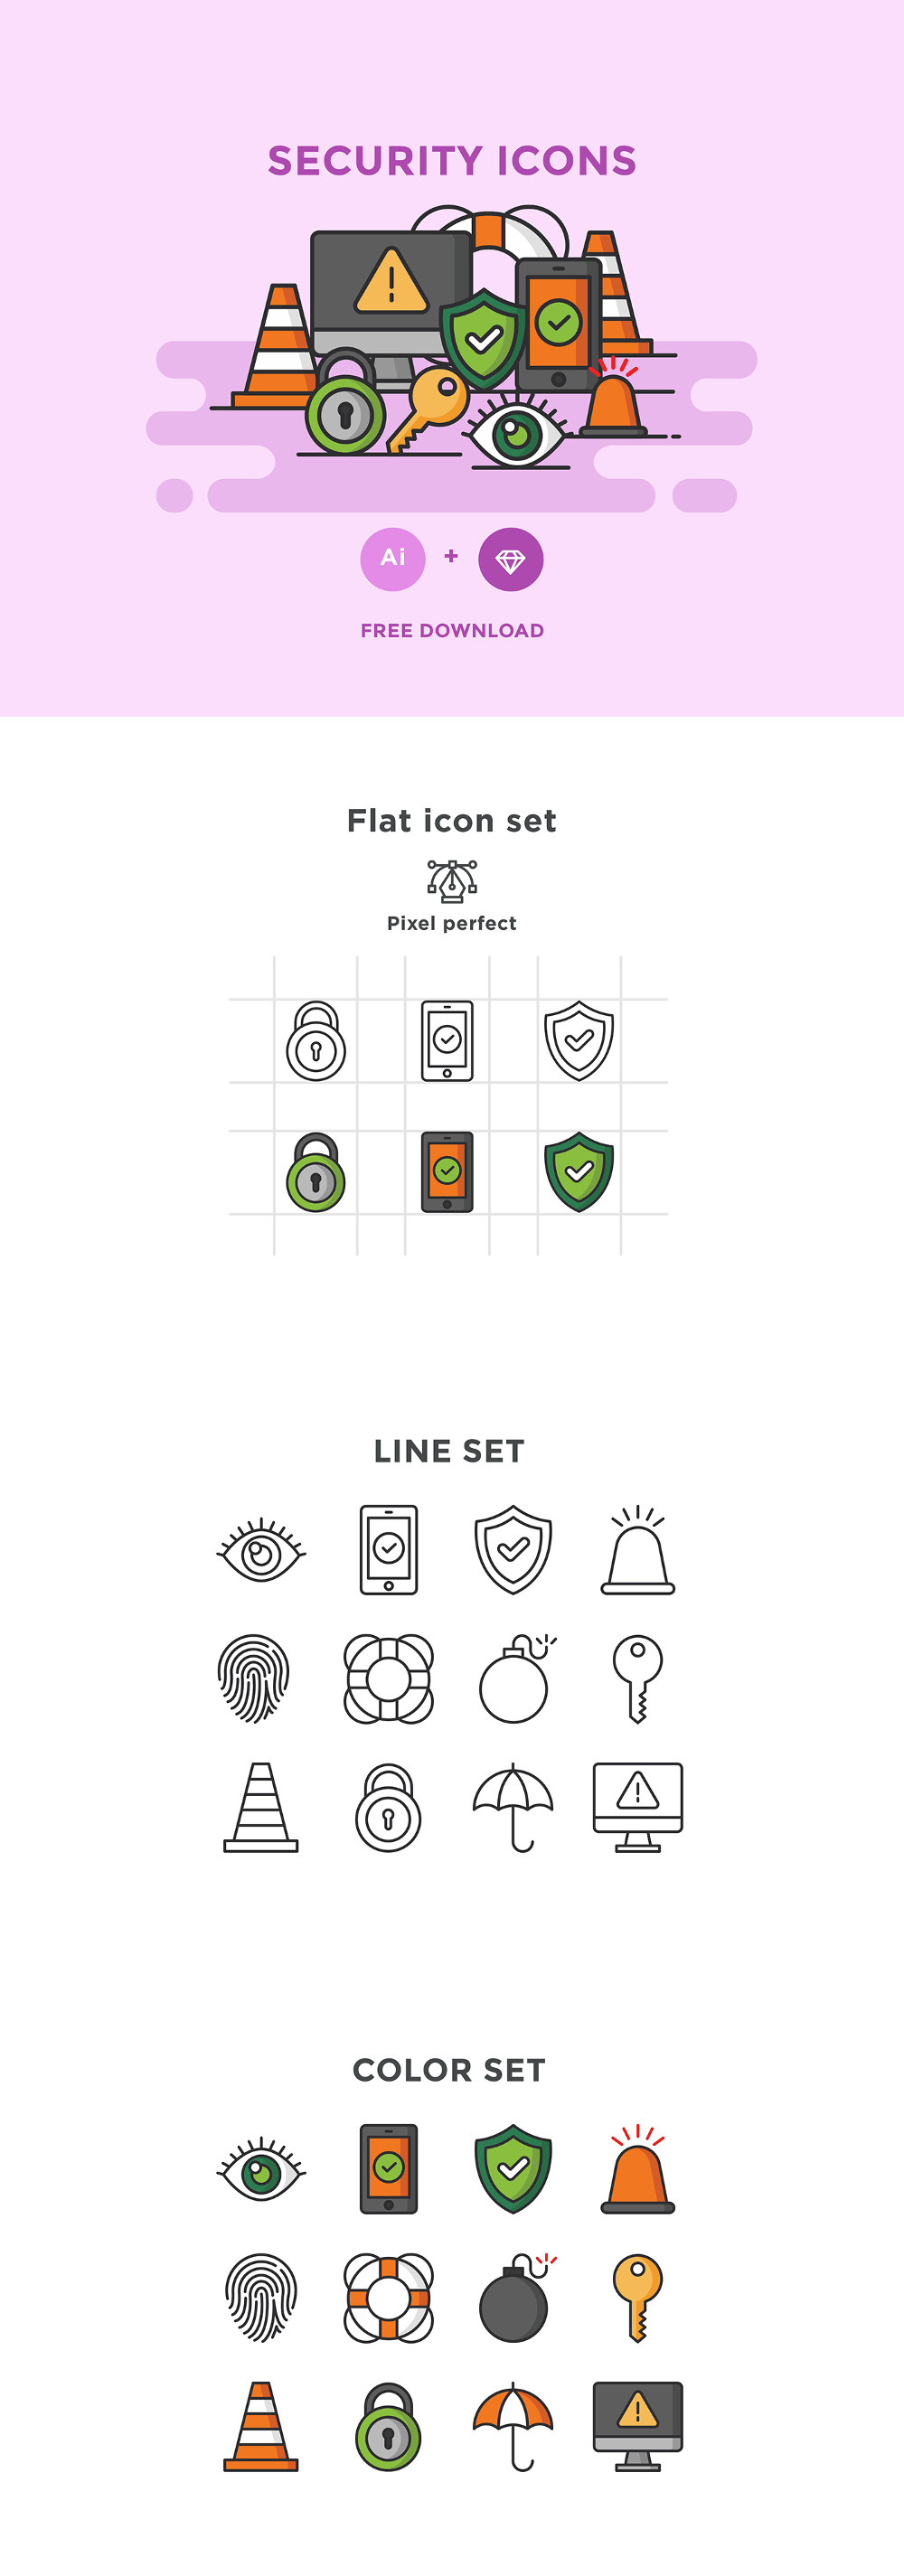 Free Vector Security Icon Set